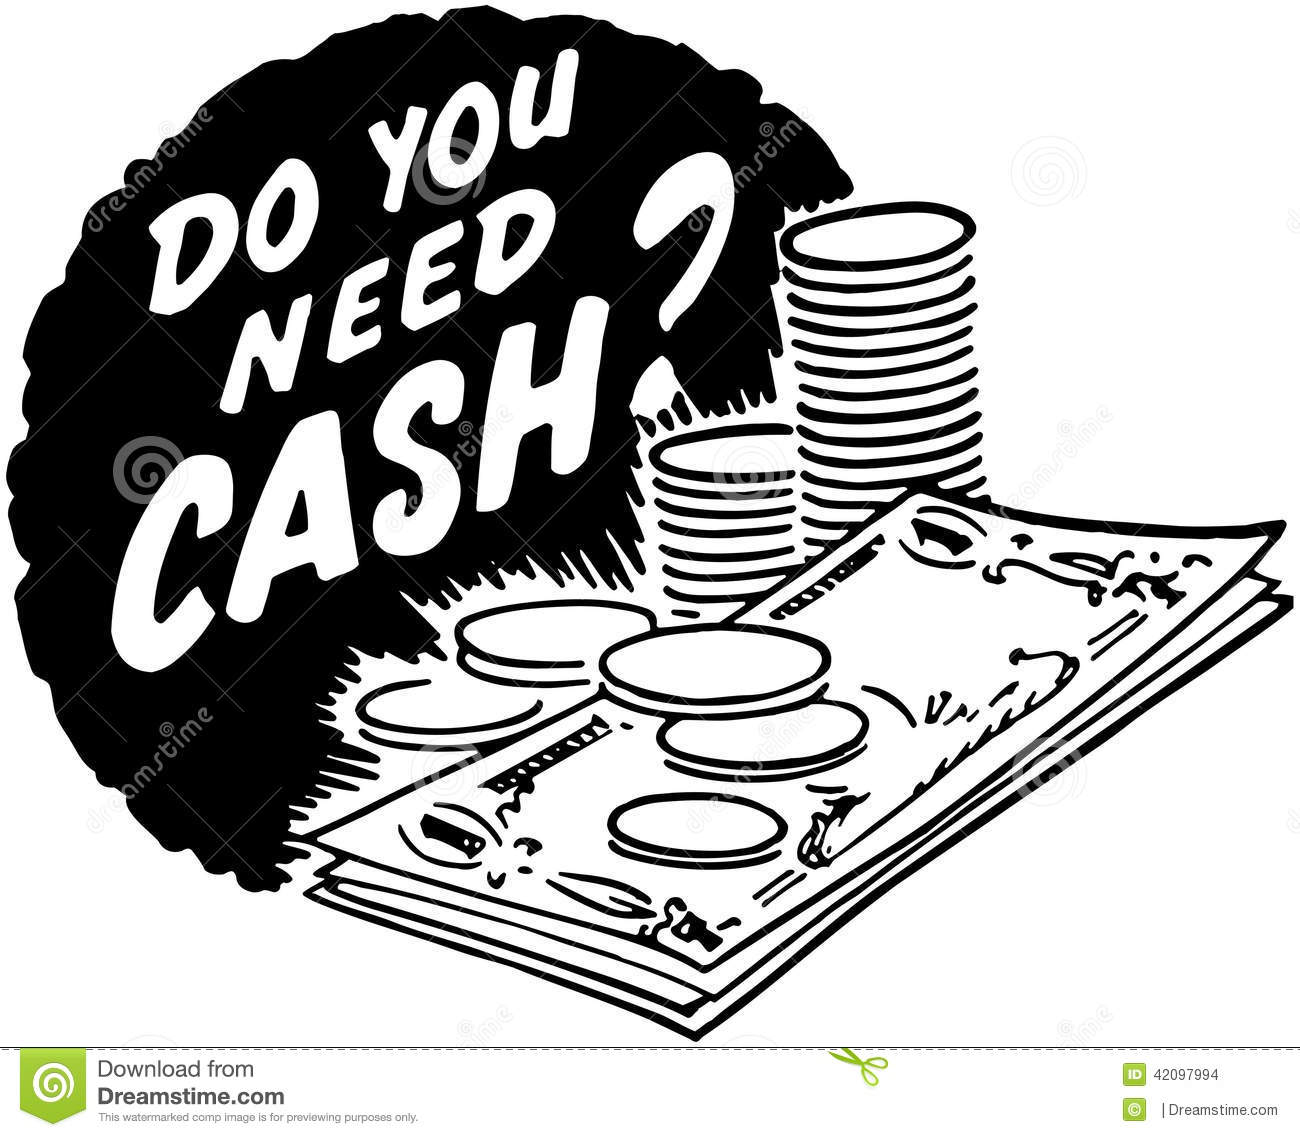 Do You Need Cash? Stock Vector Image Of Credit, Cash. Free E Commerce Website Genomic Data Analysis. Hotel Marmara Manhattan Goldman Sachs Culture. Nursing Scholarships Indiana. Colorado Car Insurance Laws Es Lexus Hybrid. Gmat Sentence Correction Laboratory Bench Top. Insurance Policy Management Software. Texas Intensive English Program. Chase Personal Student Loans